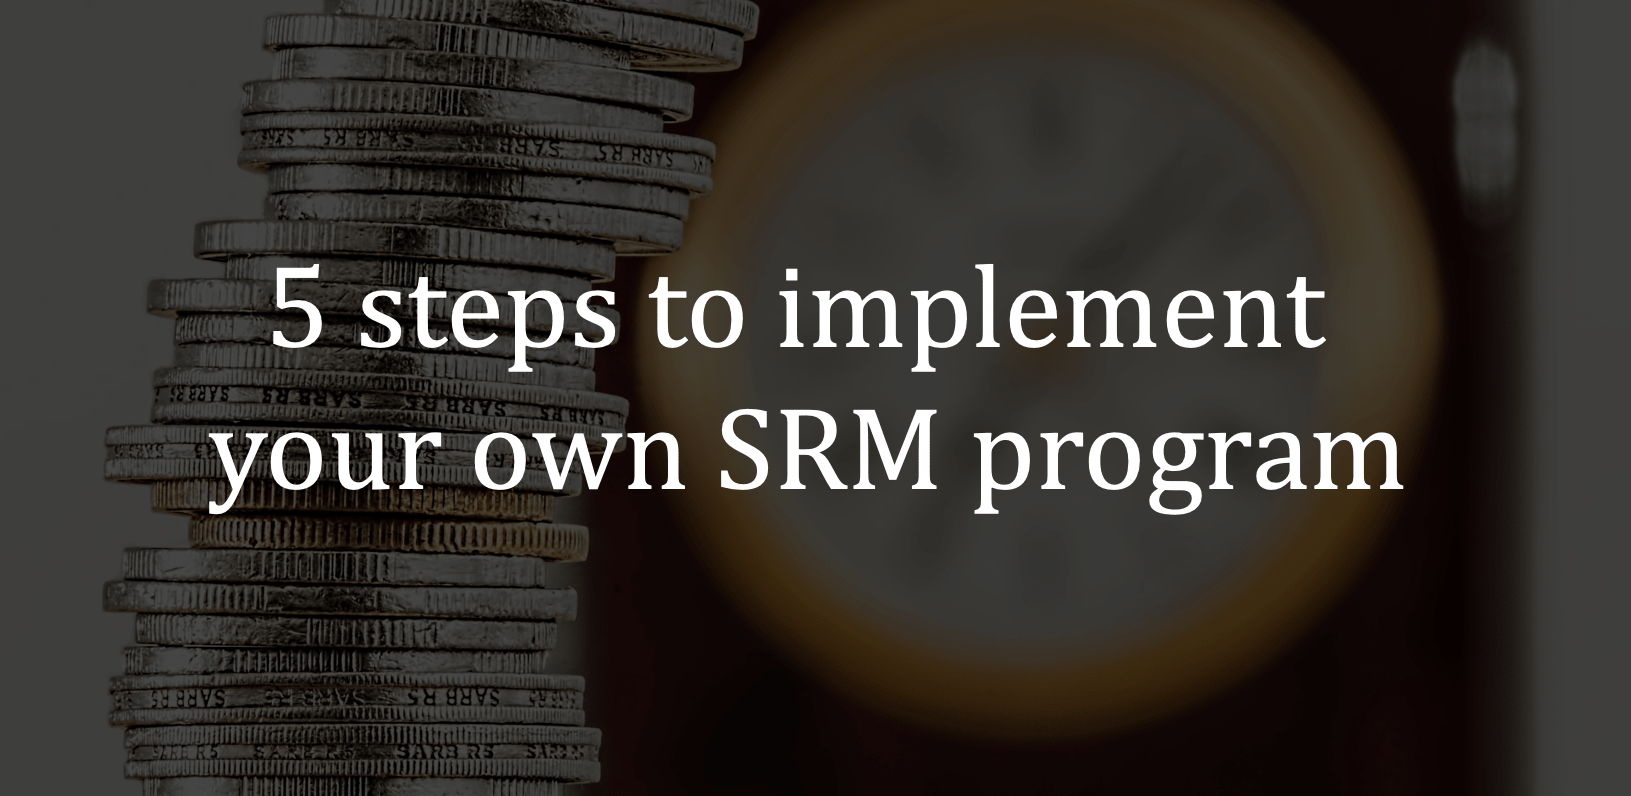 5 steps to implement your own SRM program